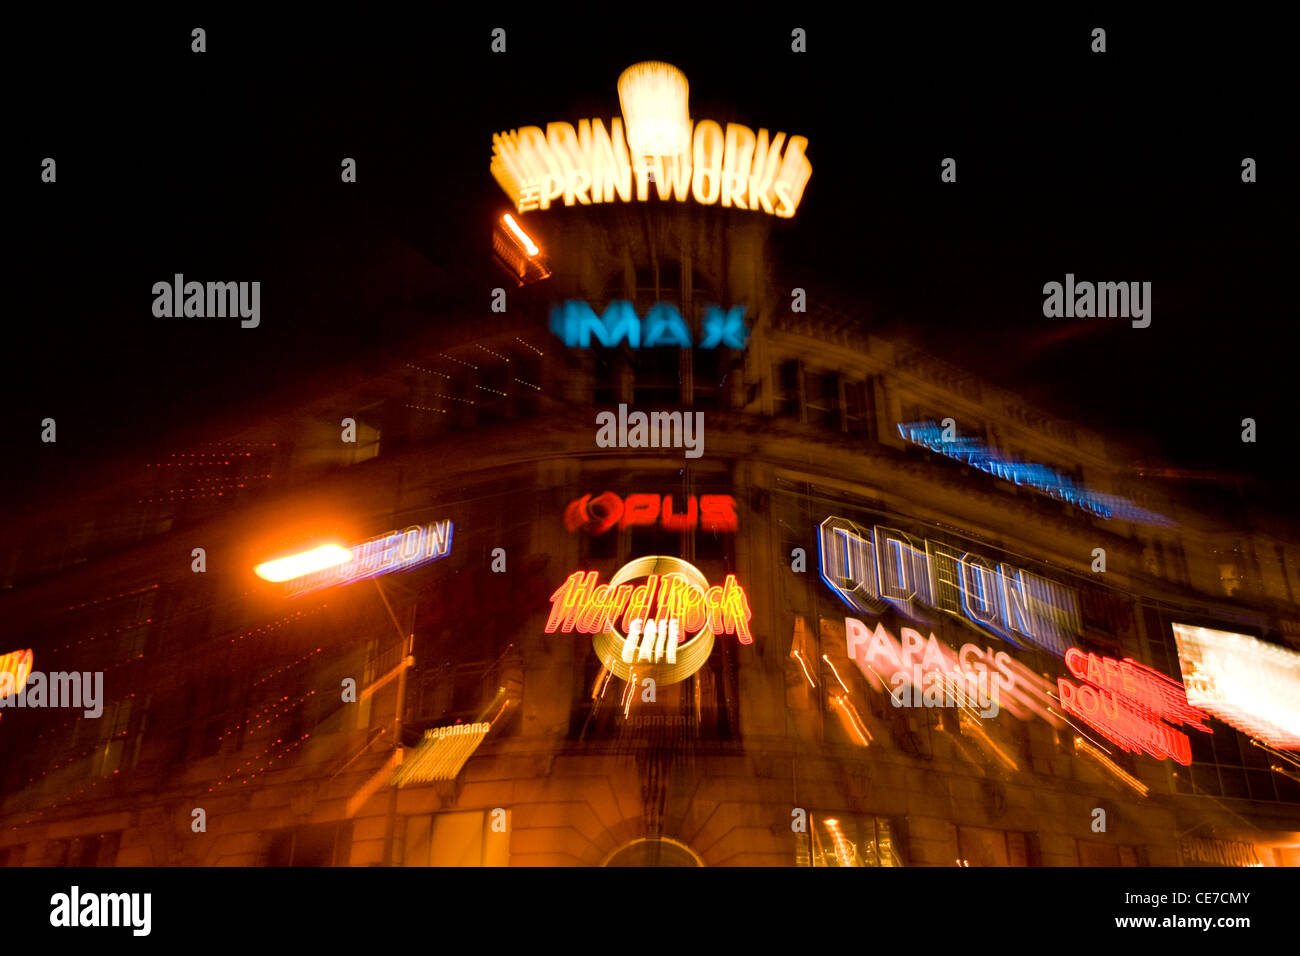 The Printworks Manchester City Centre UK. This image was created by using the in camera zoom burst method. - Stock Image